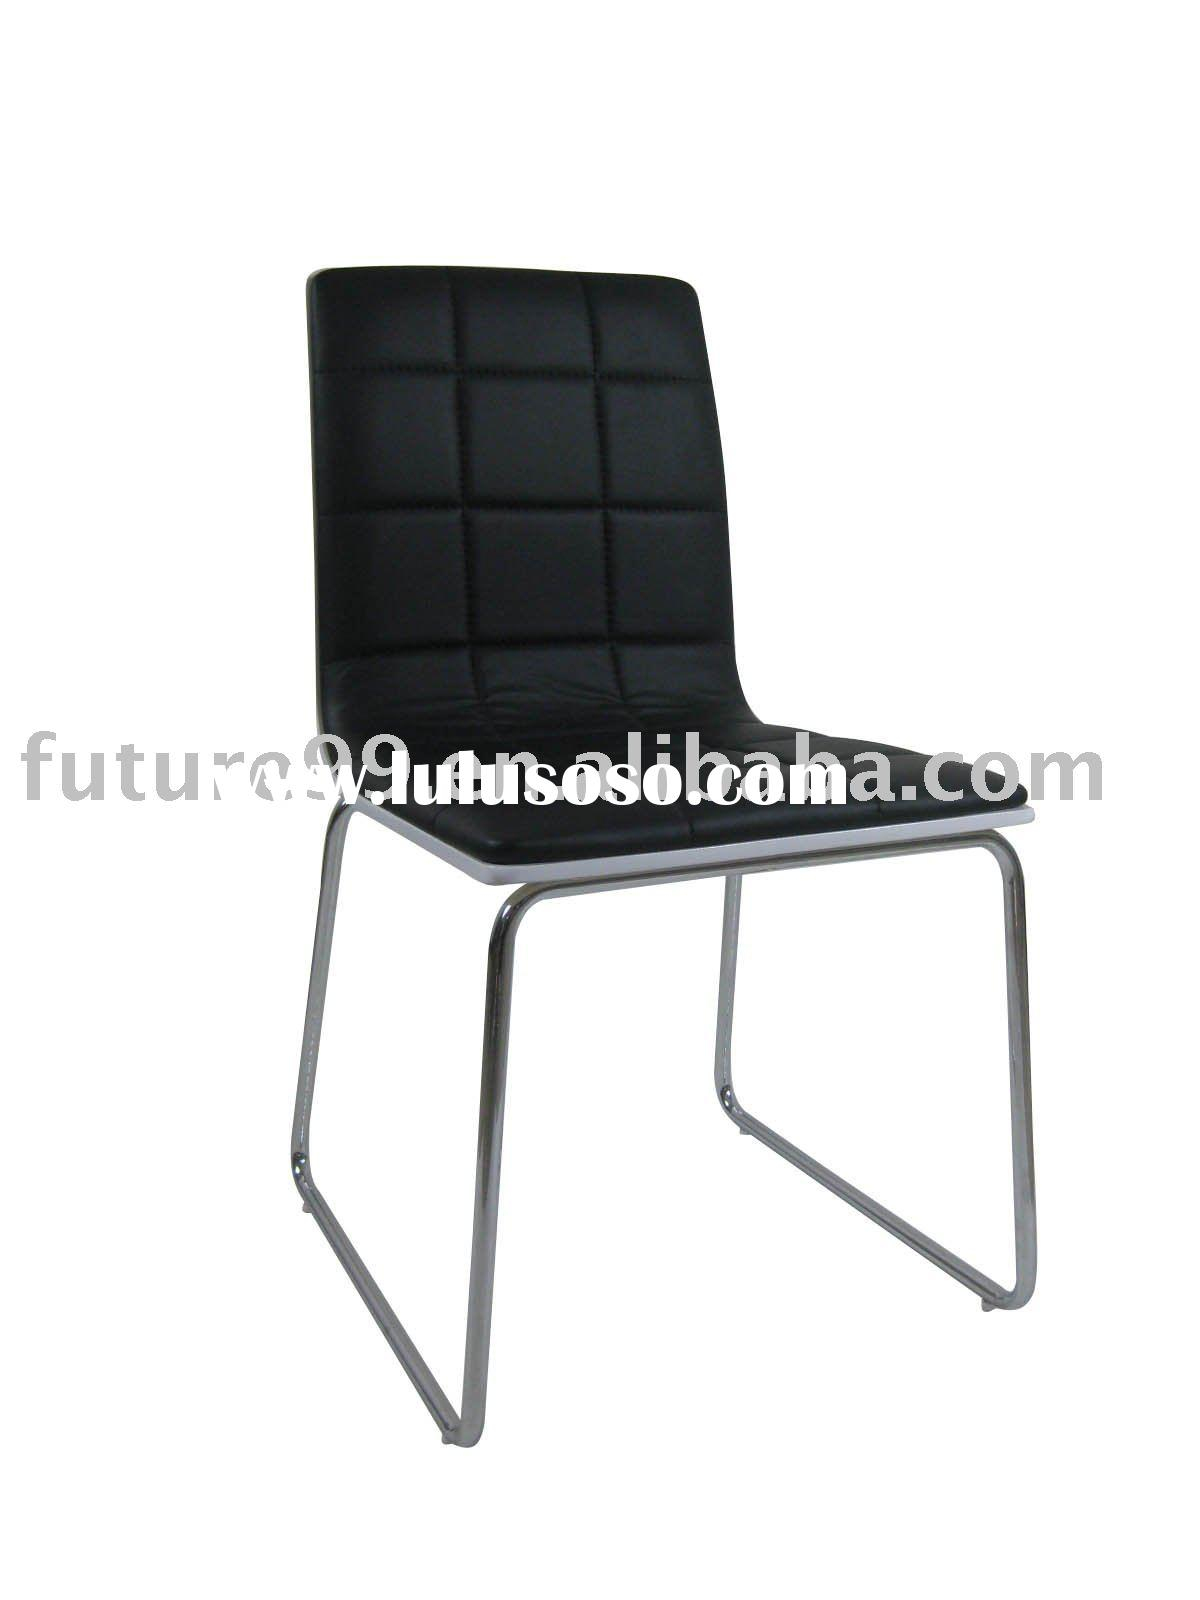 black pu leather bent wood stitching metal chromed dining chairs